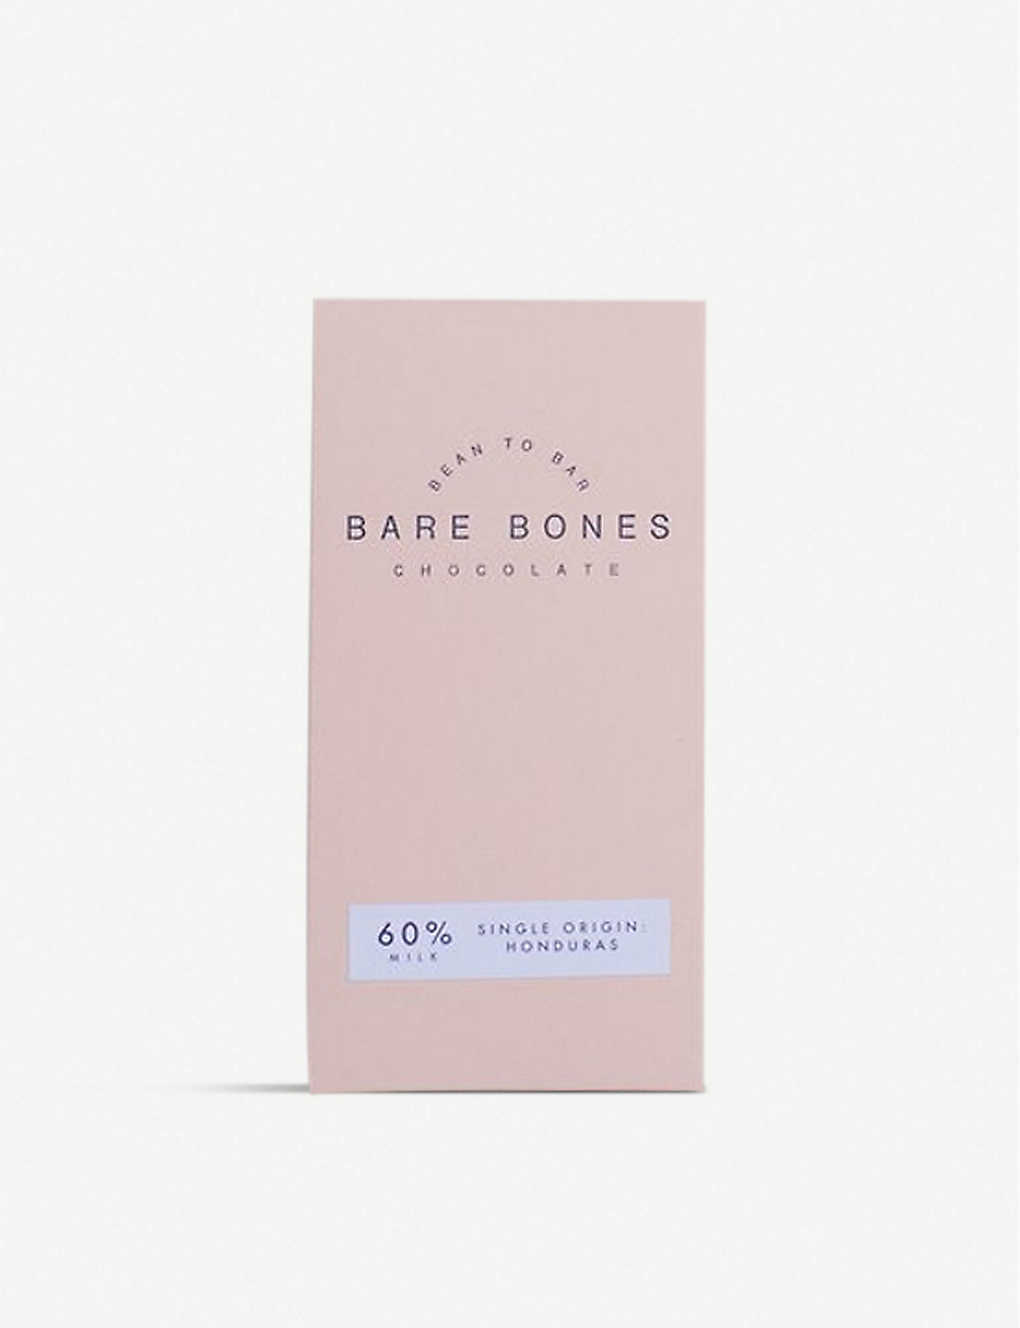 CHOCOLATE: Bare Bones Honduras 60% milk chocolate bar 70g